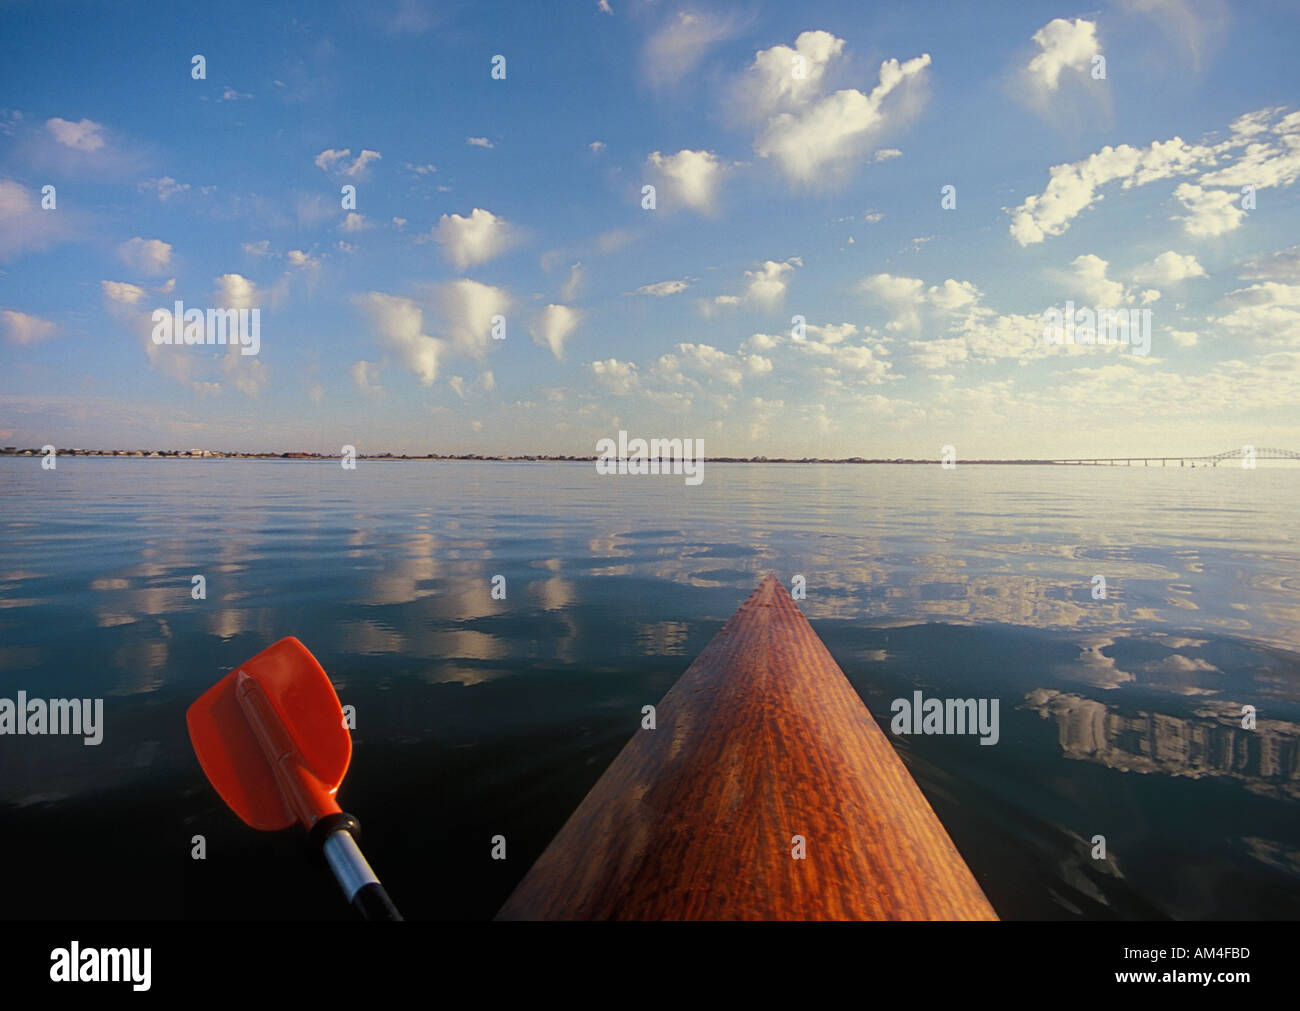 looking over the bow of a wooden kayak resting on a glassy smooth sea. - Stock Image